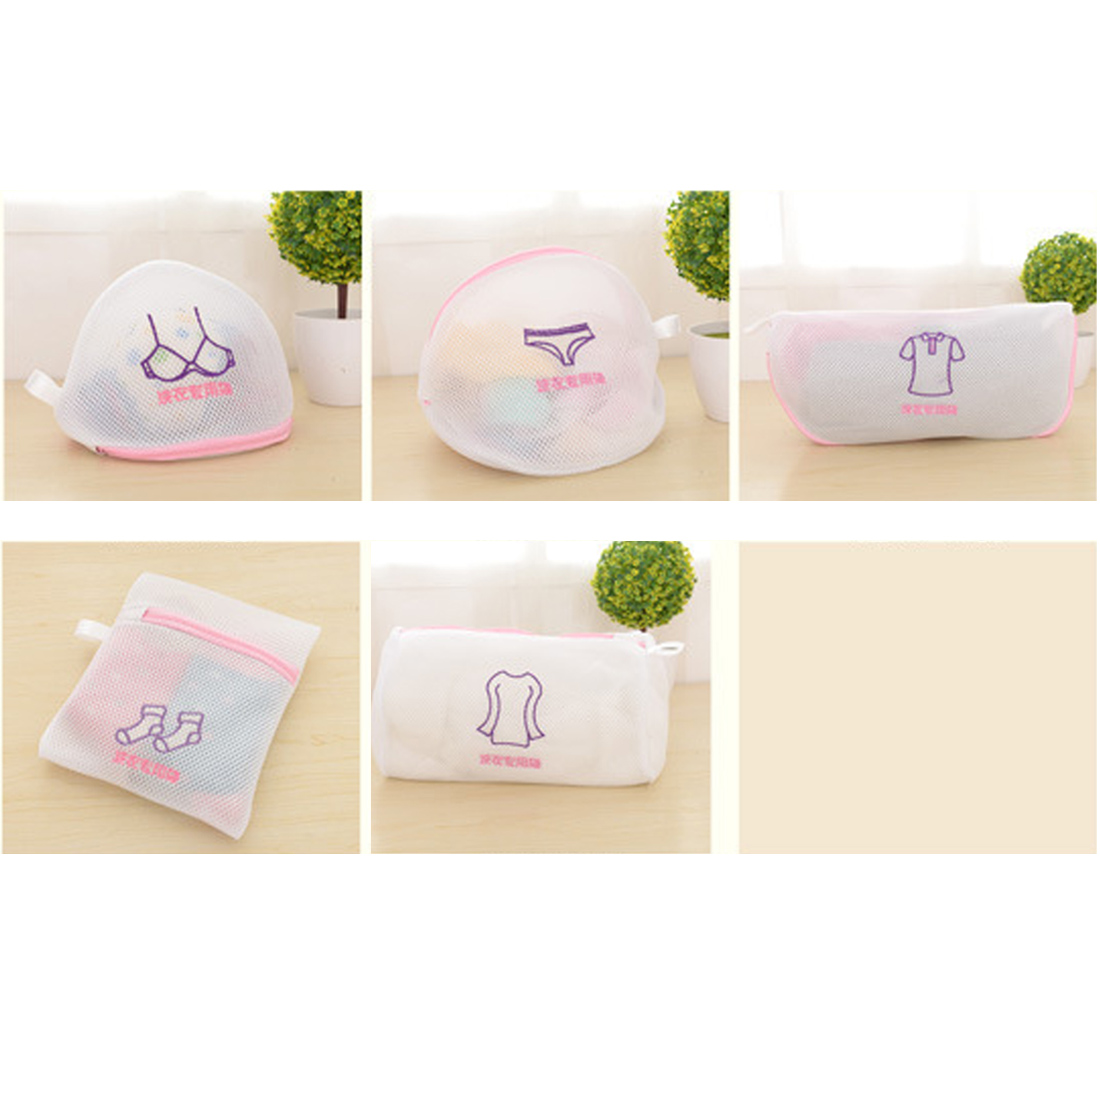 5pcs Zippered Laundry Bags Set Washing Machines Thickened Double Layer Bra Socks Underwear Protecting Mesh Bag in Laundry Bags Baskets from Home Garden